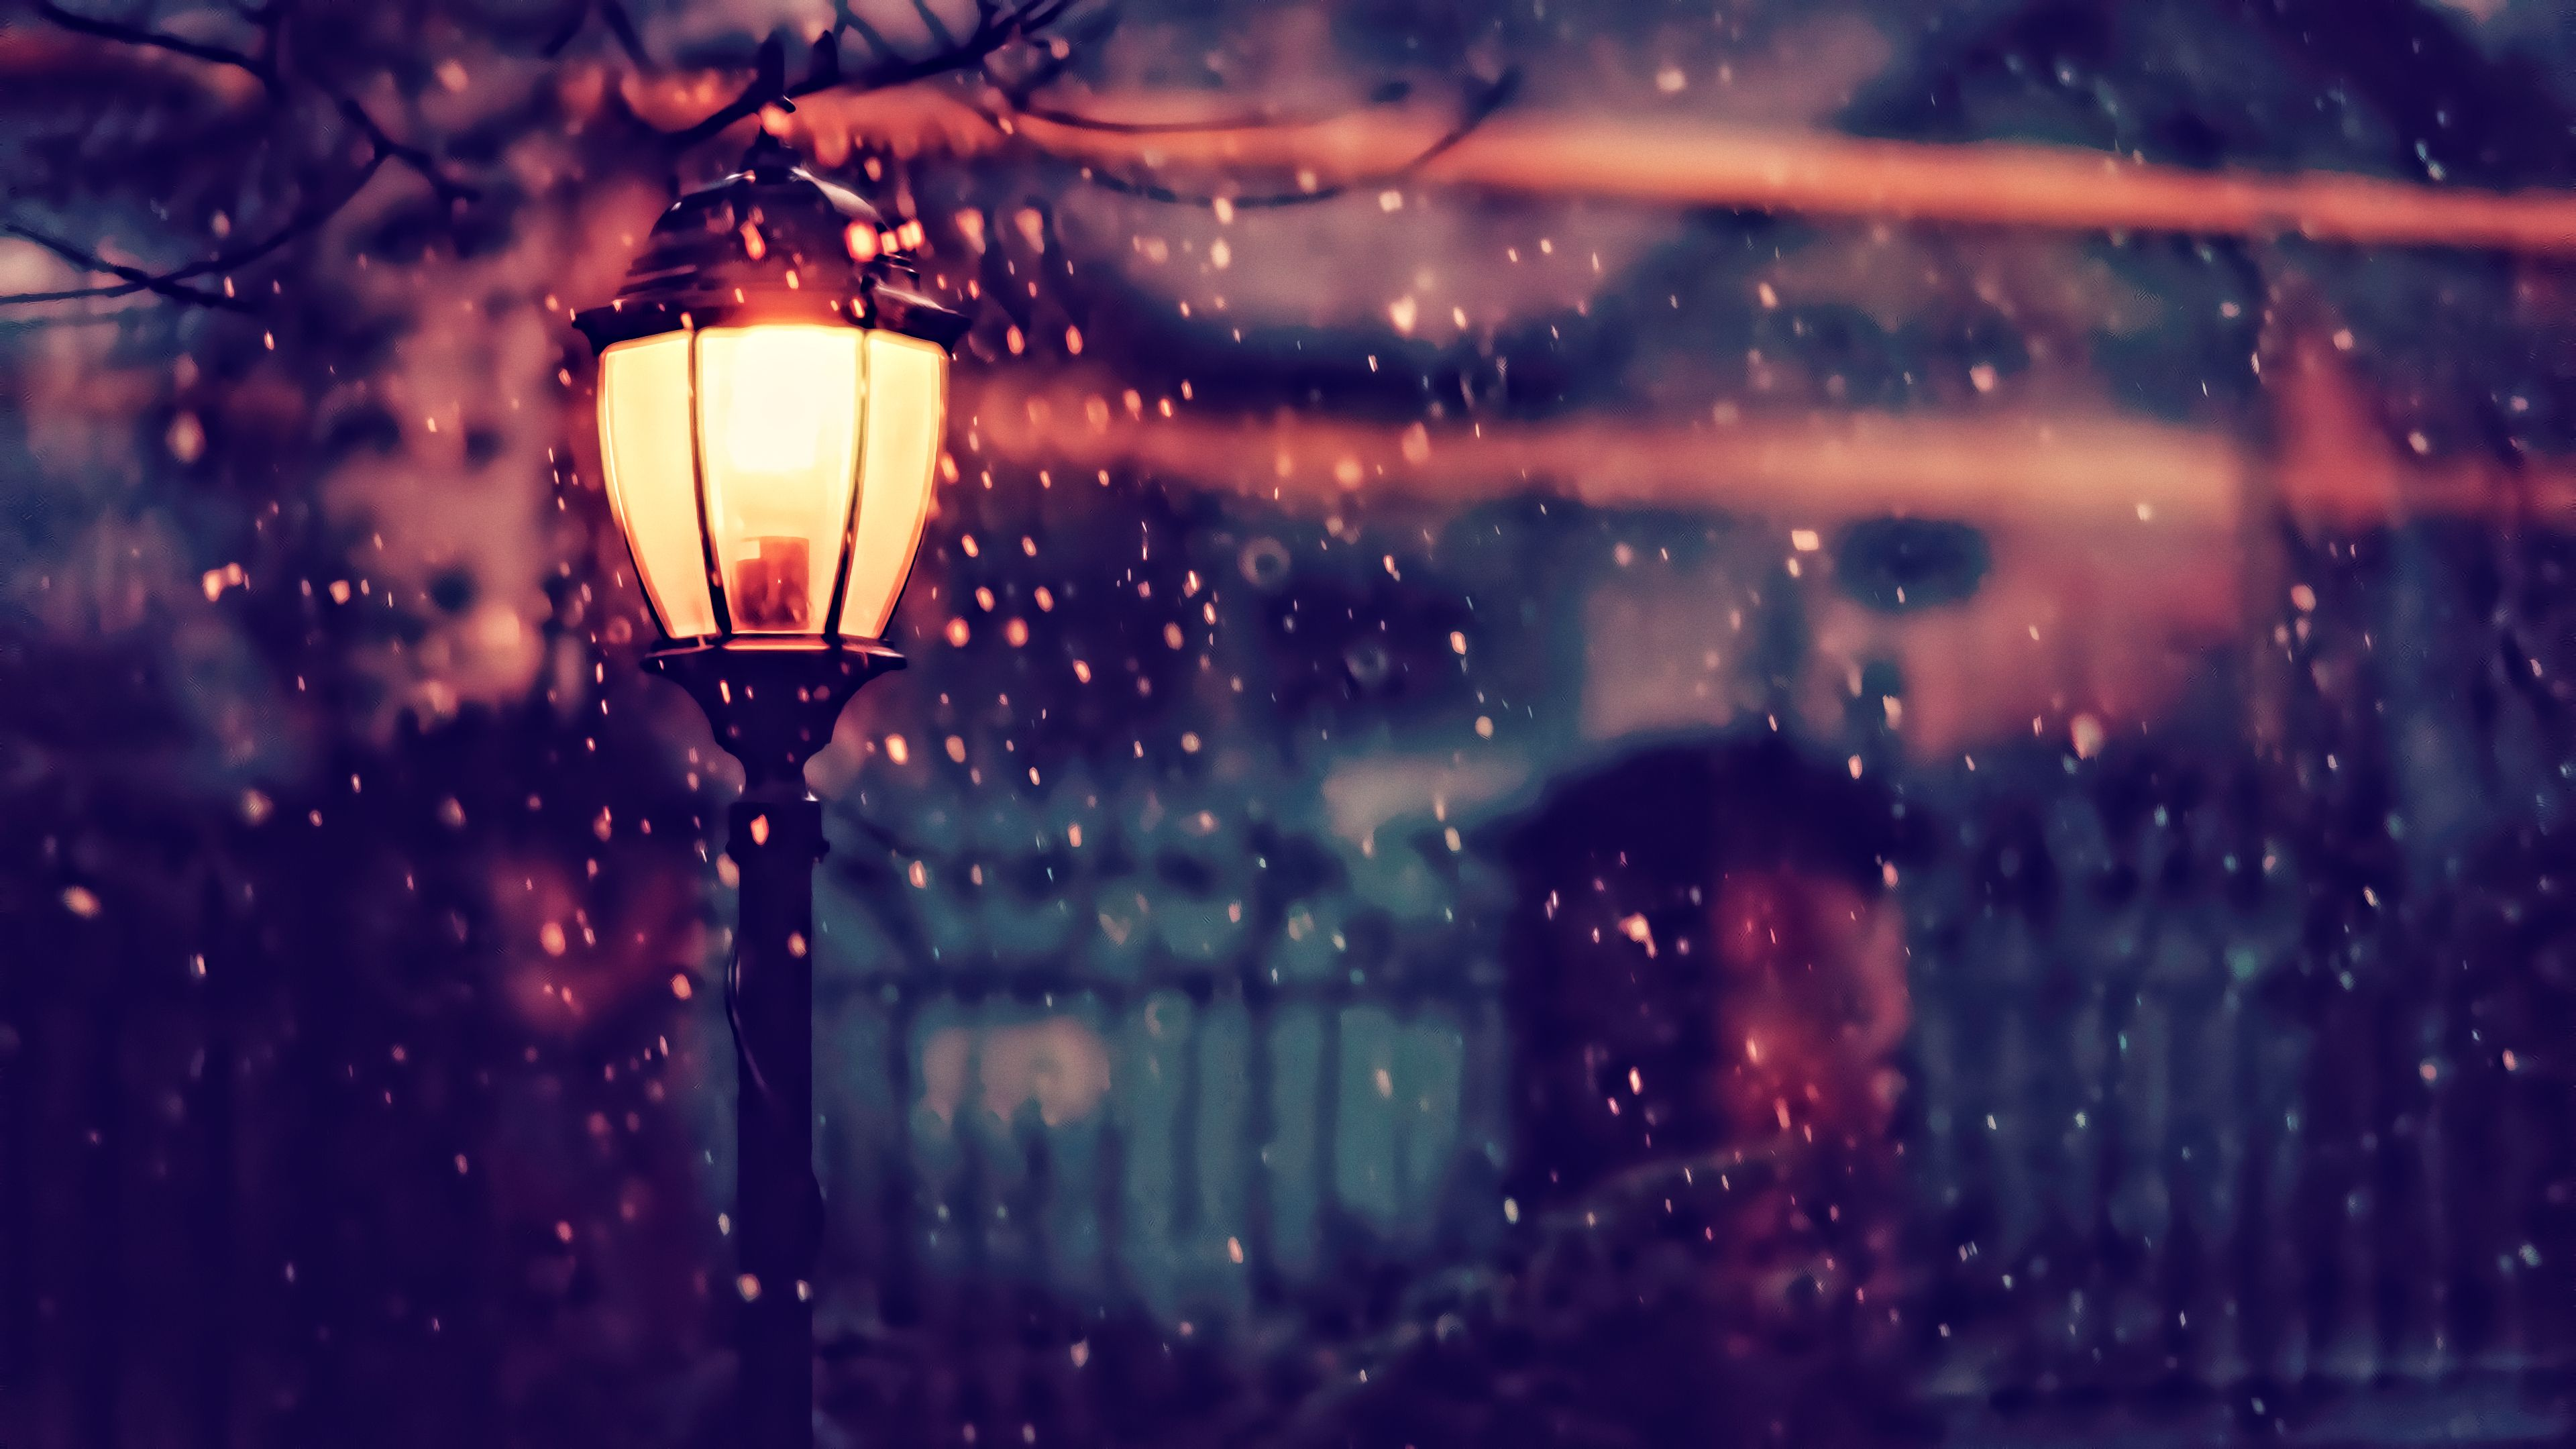 Winter Lights Wallpapers Top Free Winter Lights Backgrounds Wallpaperaccess